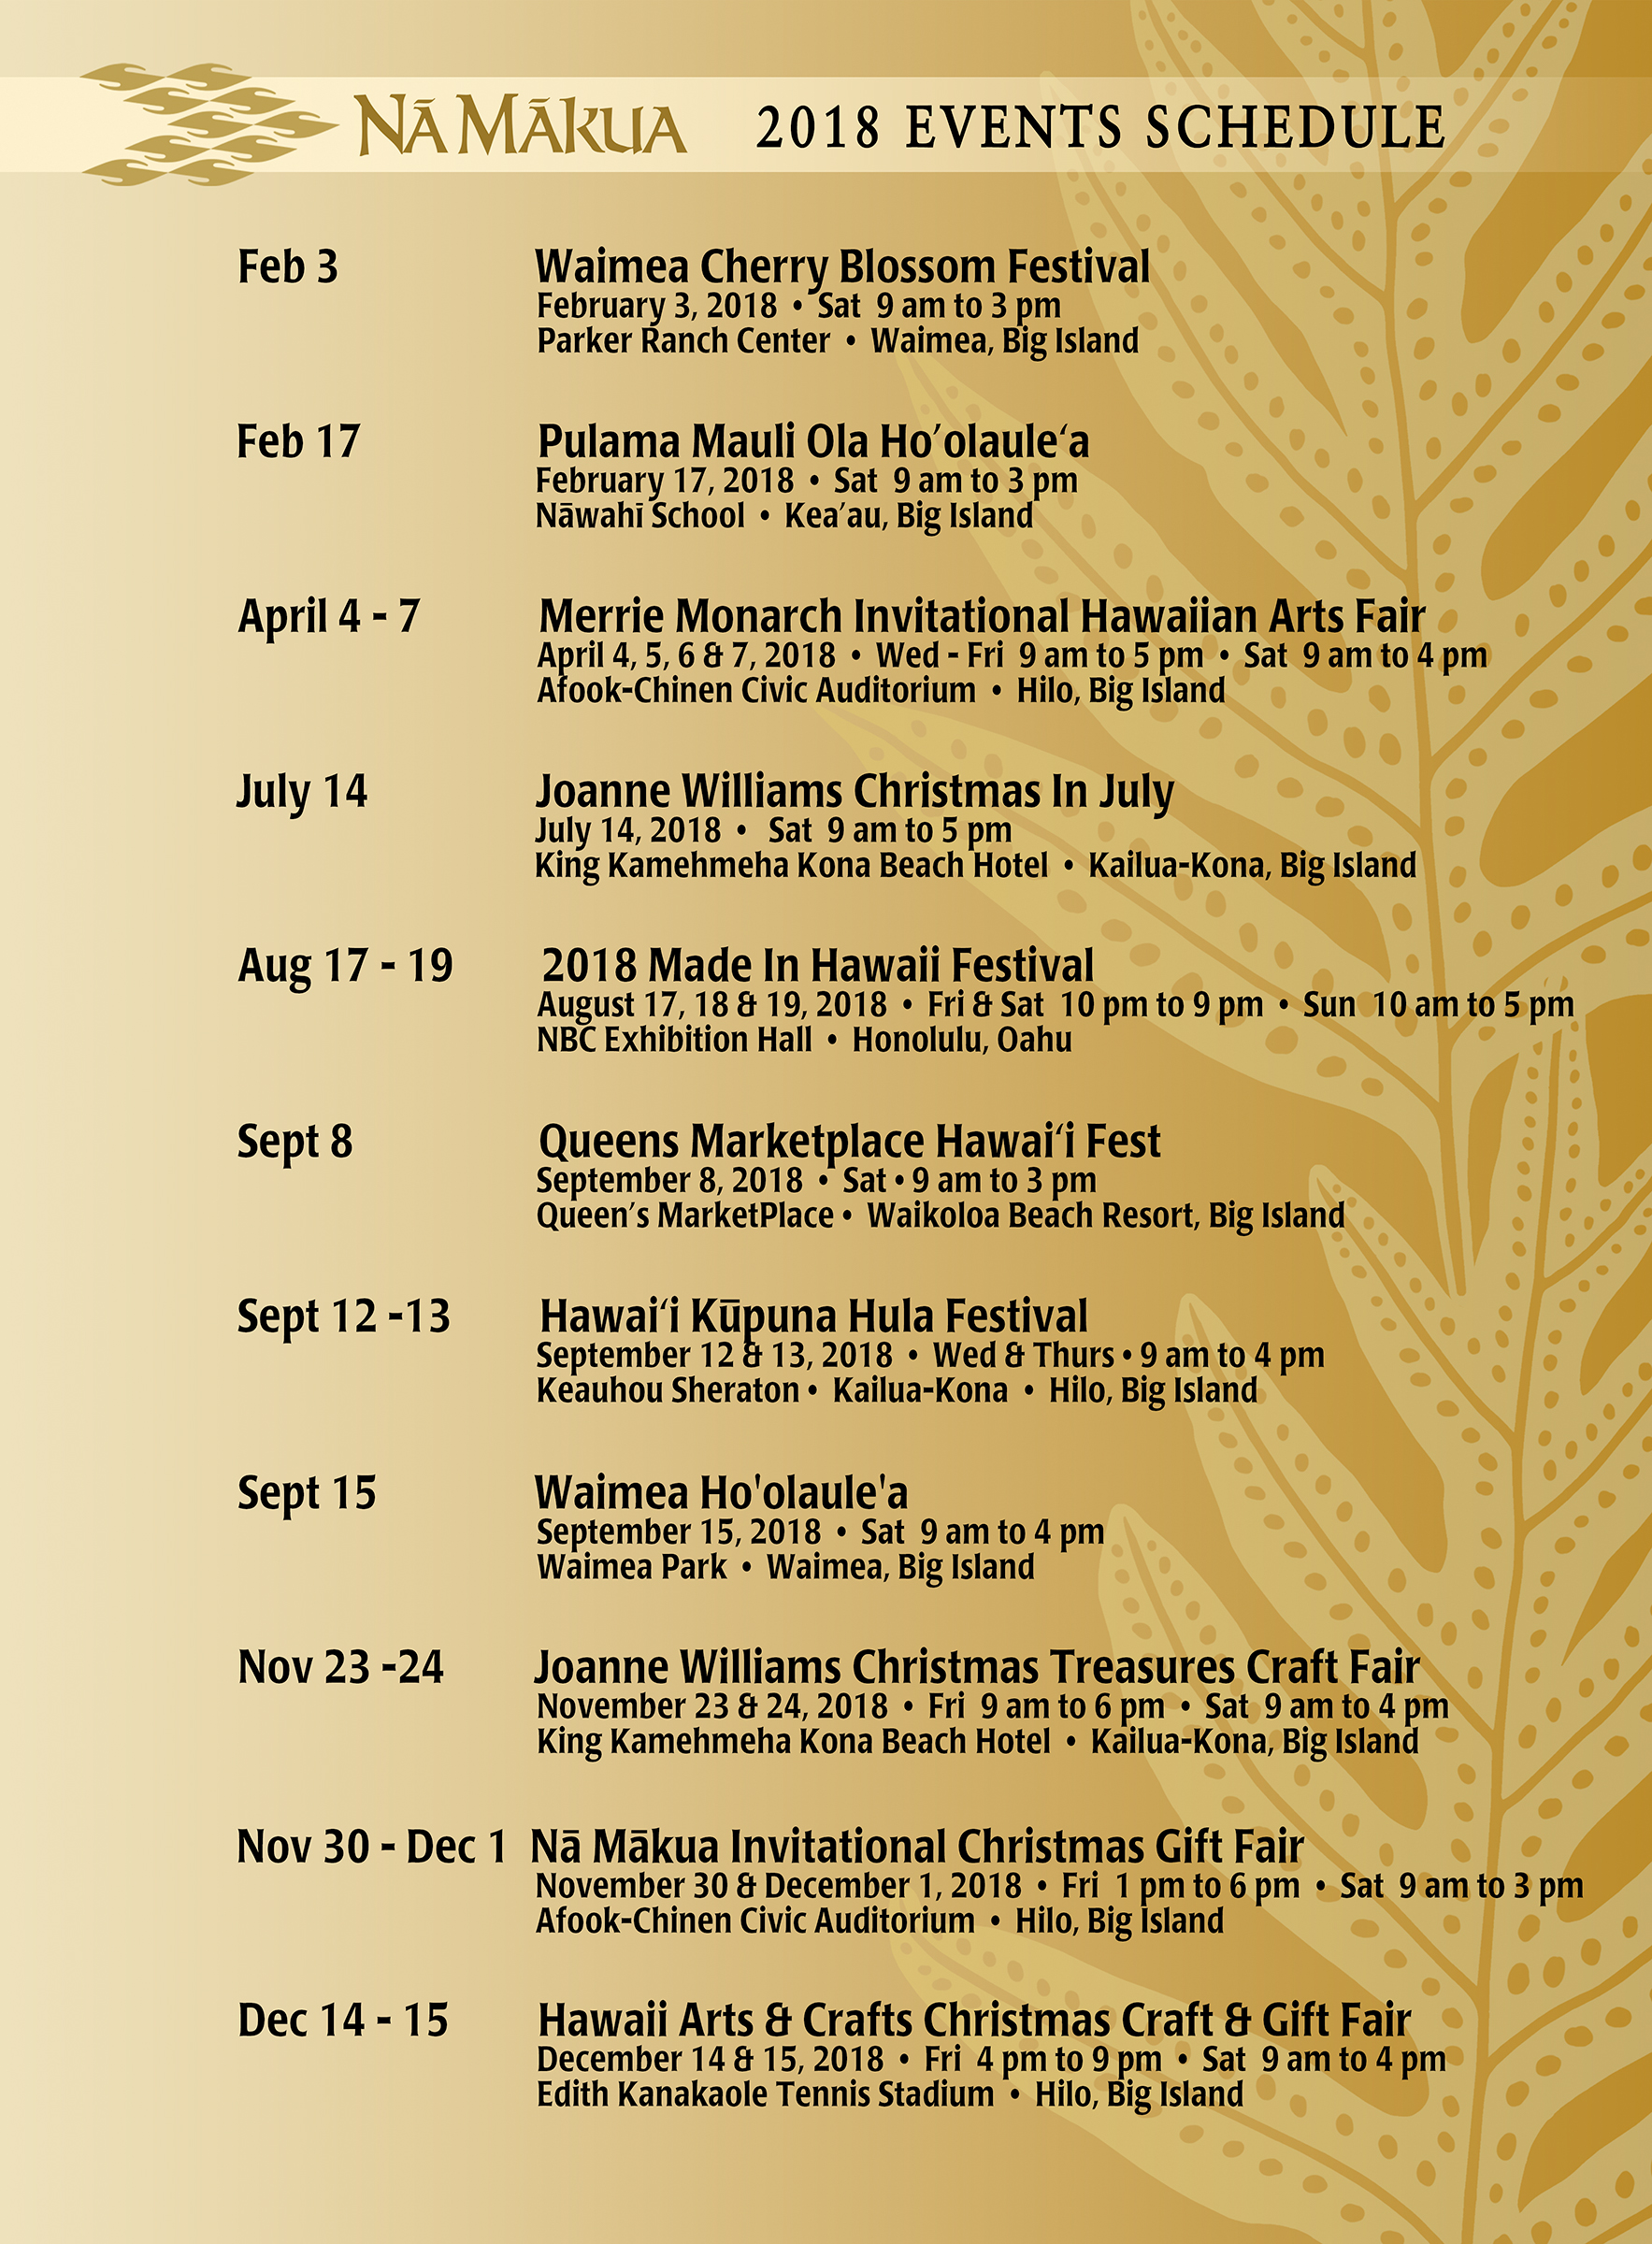 Na Makua Events 2018 Schedule